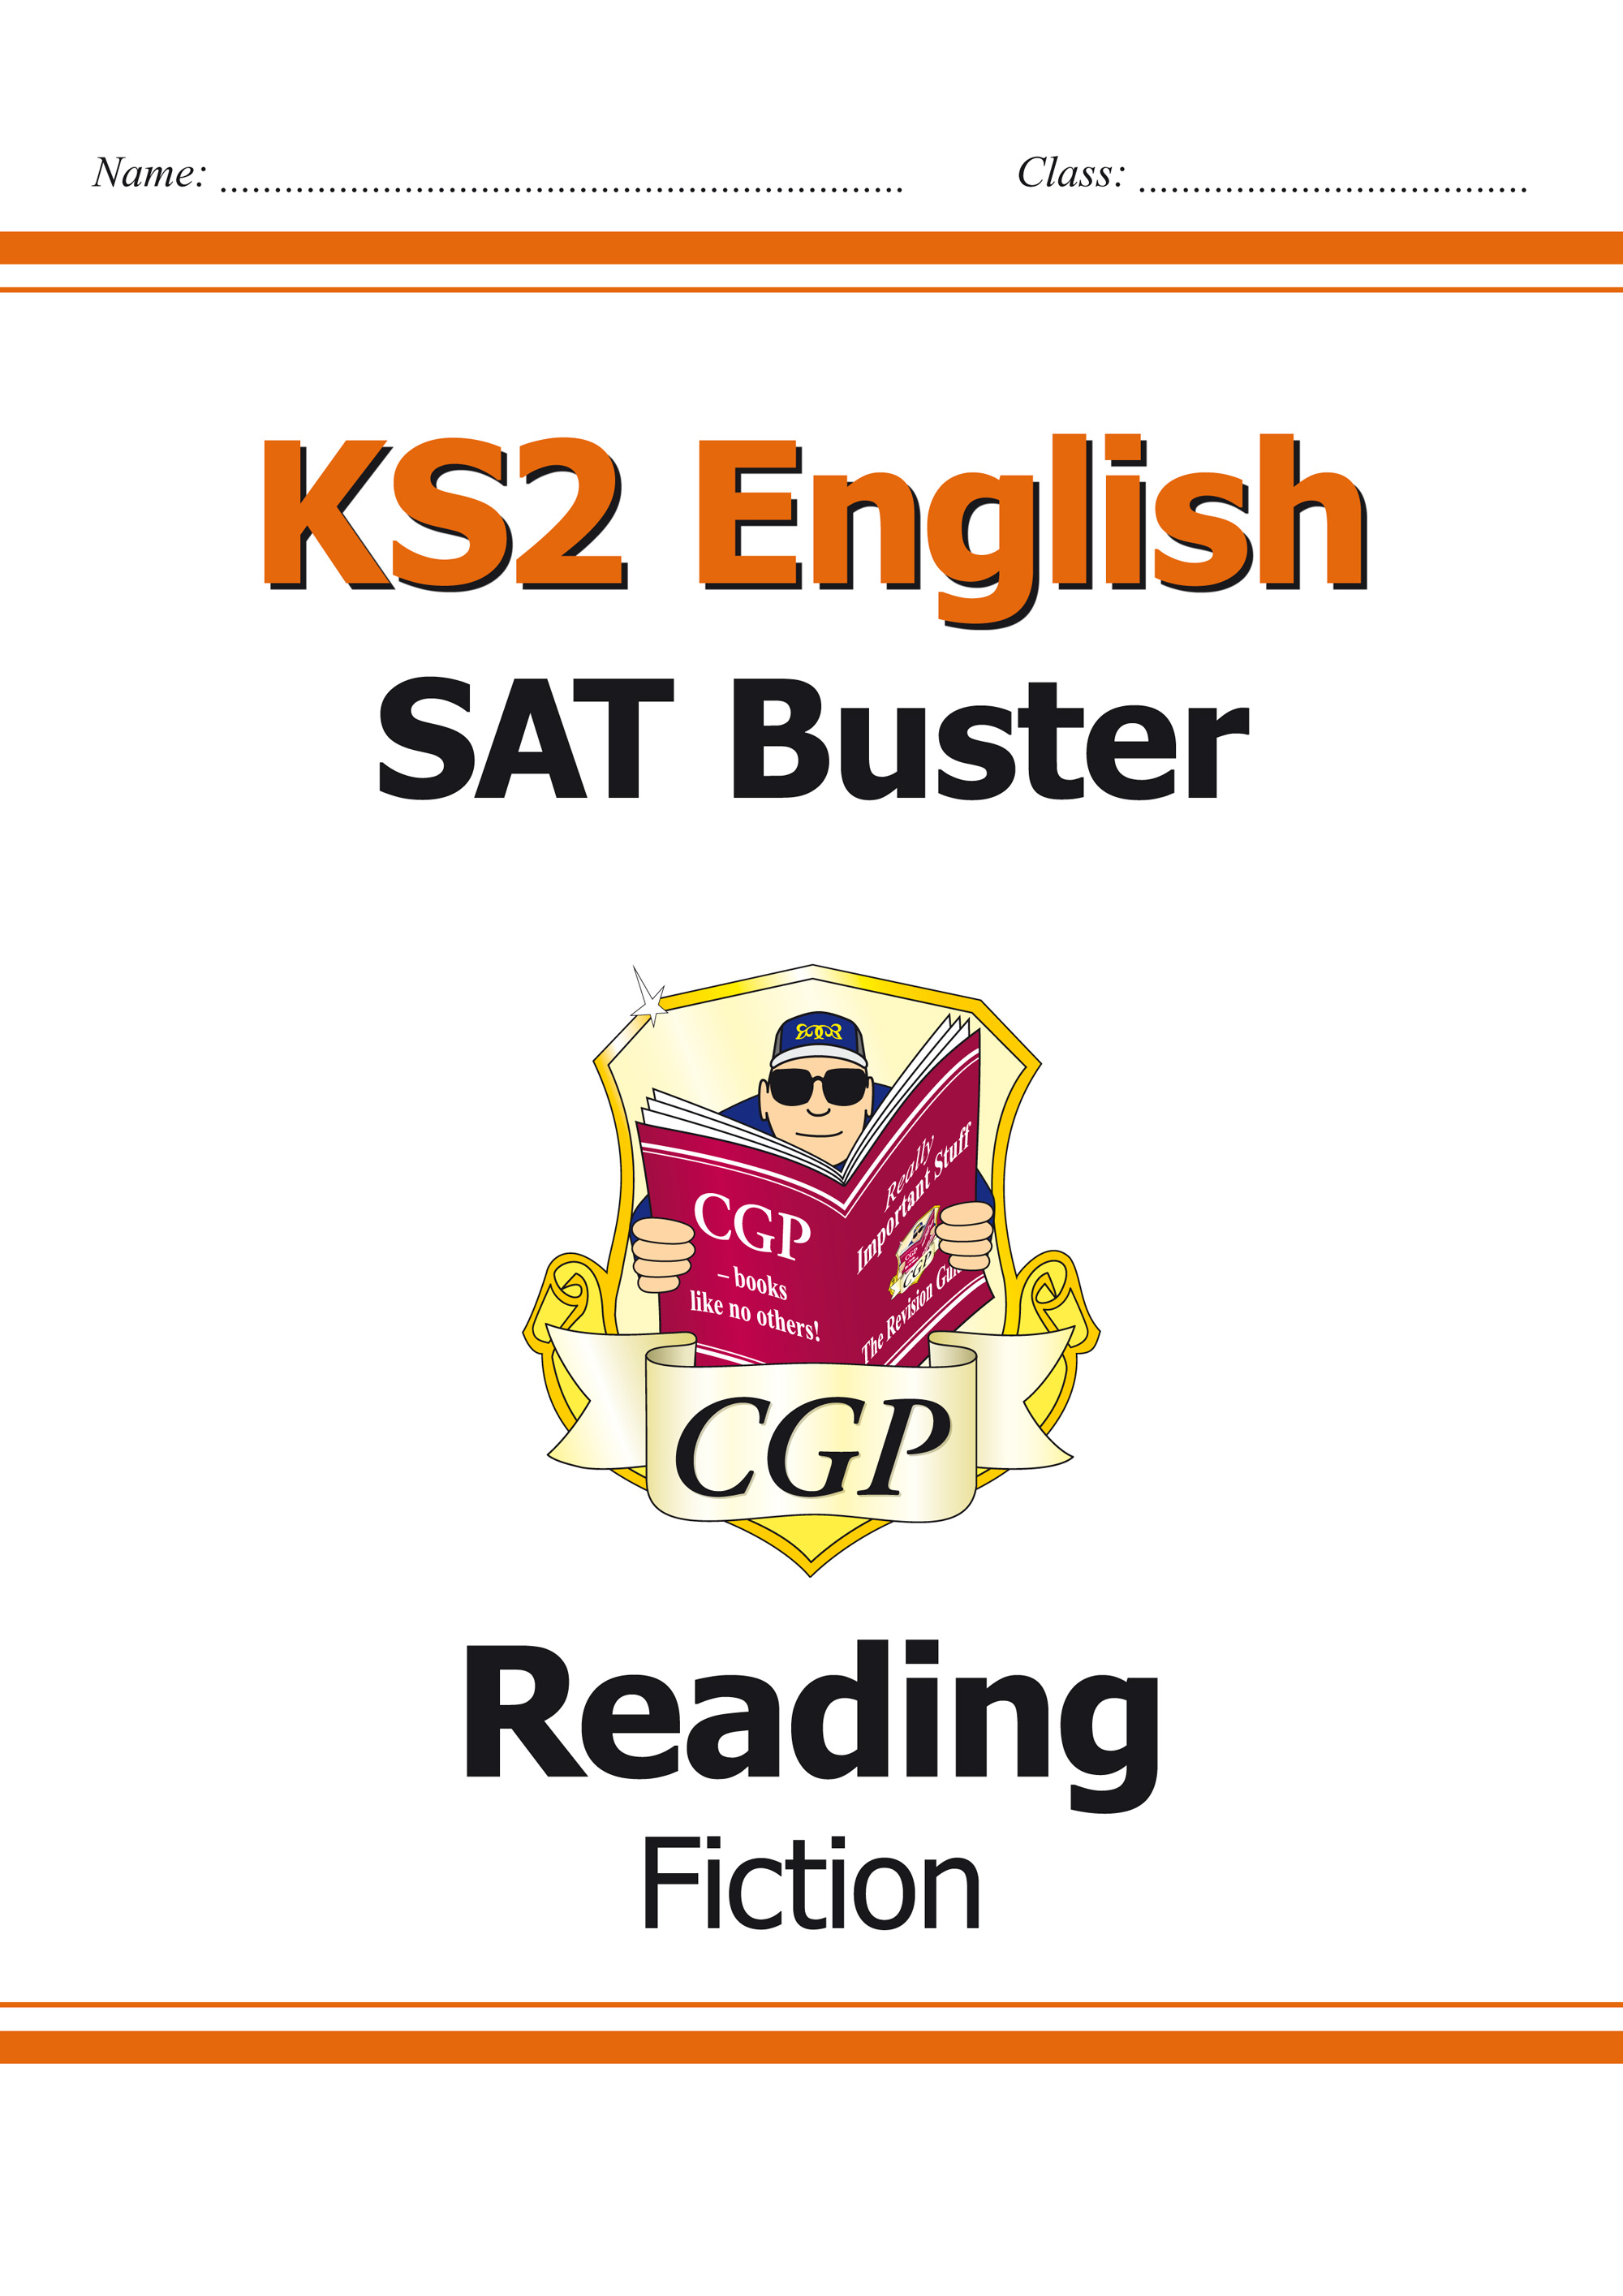 E6FRF21 - KS2 English Reading SAT Buster: Fiction Book 1 (for the 2019 tests)